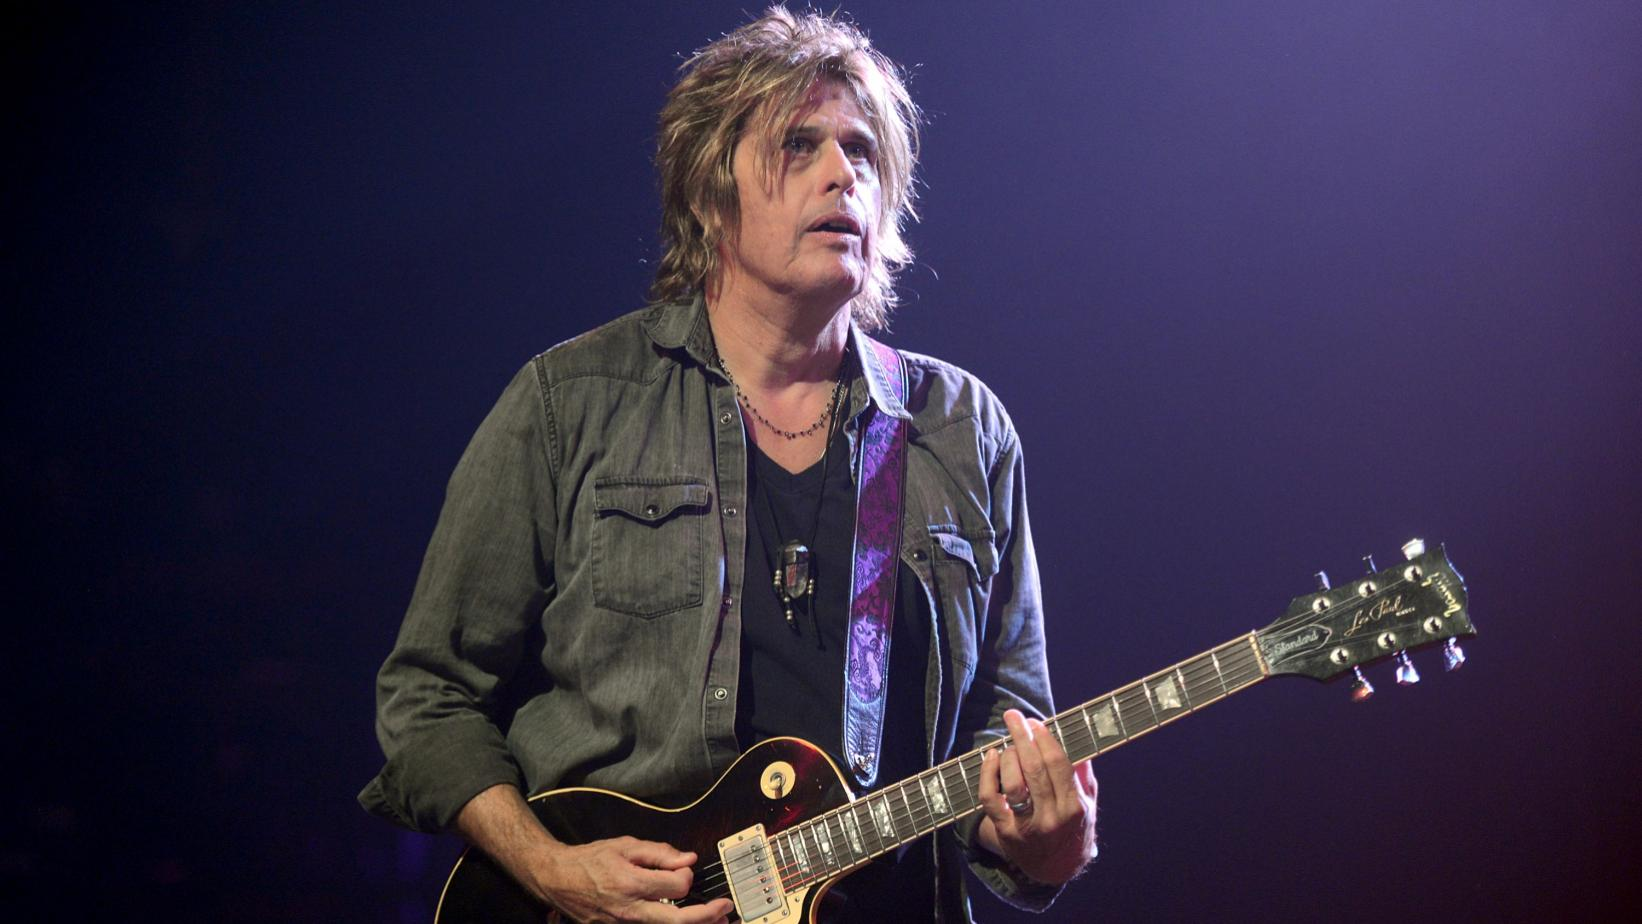 Dean DeLeo photographed onstage in 2017